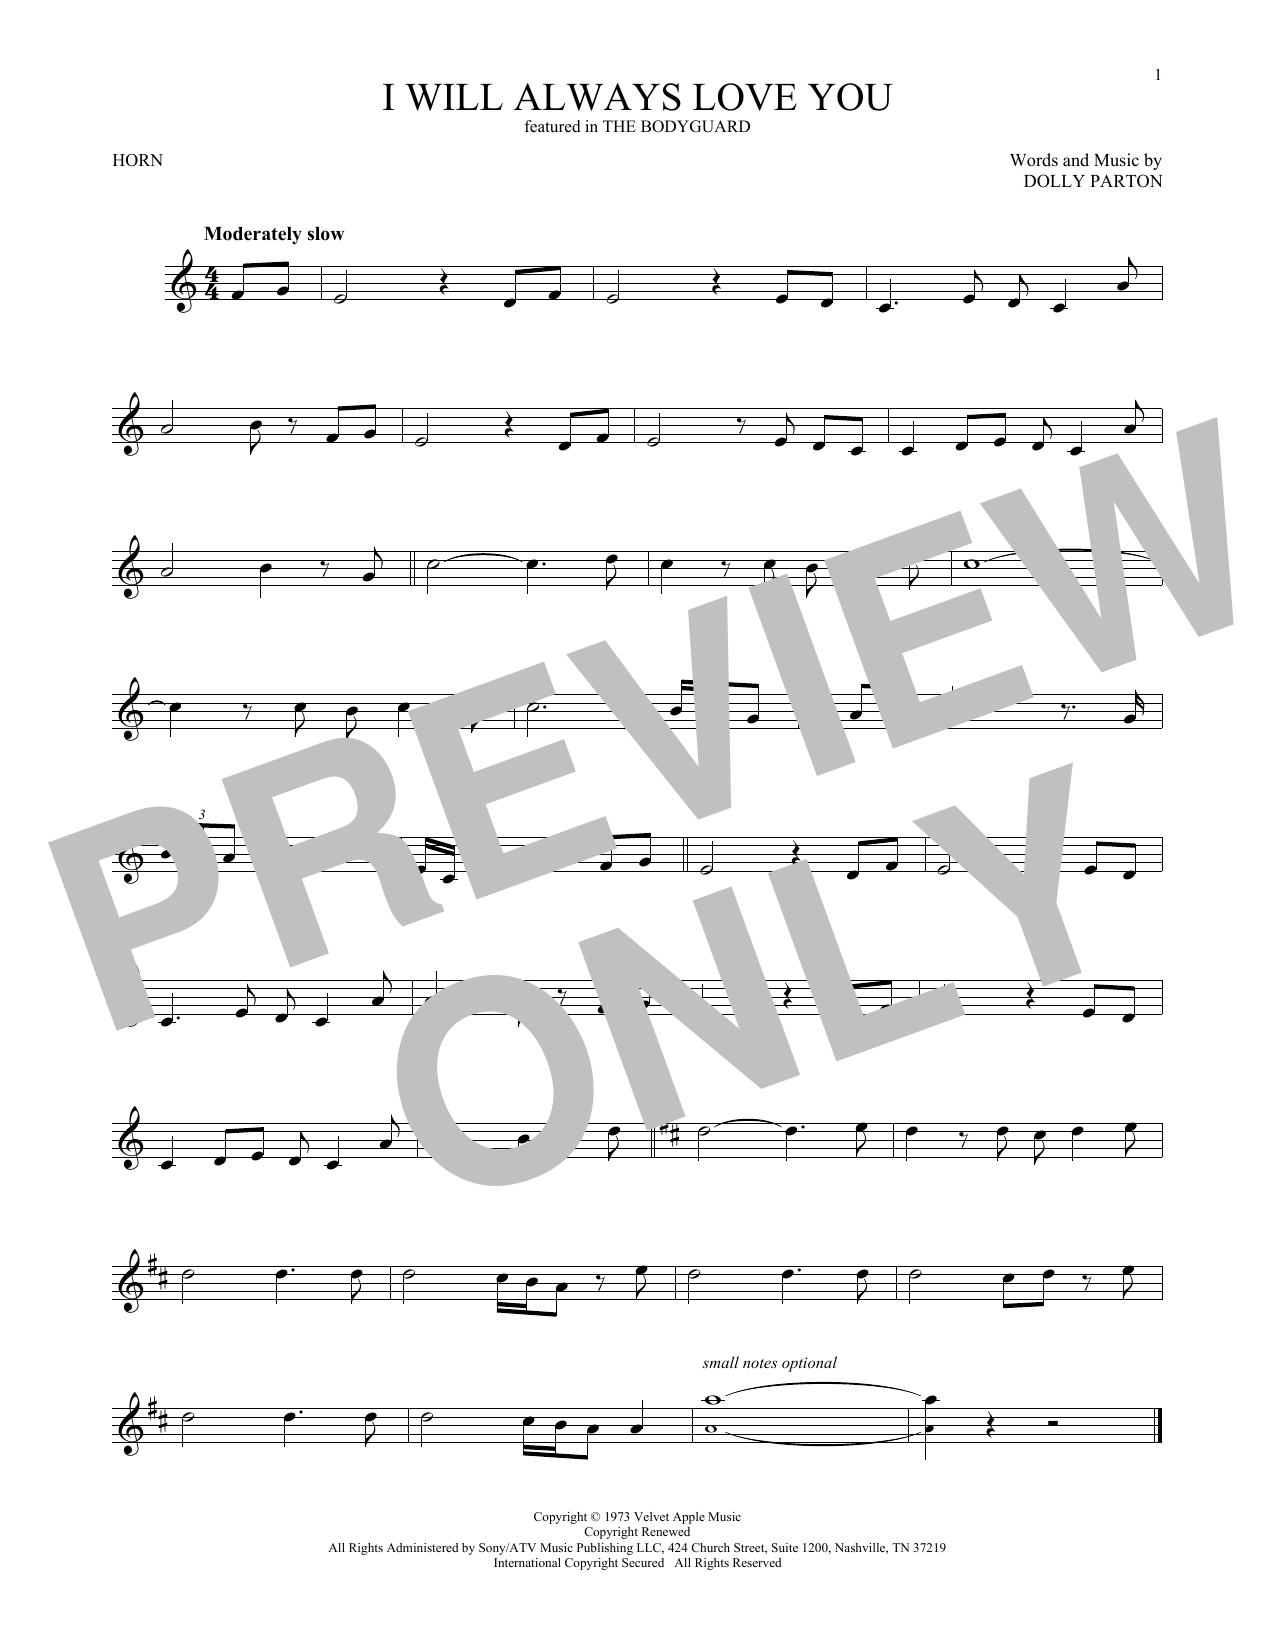 Sheet Music Digital Files To Print Licensed Dolly Parton Digital